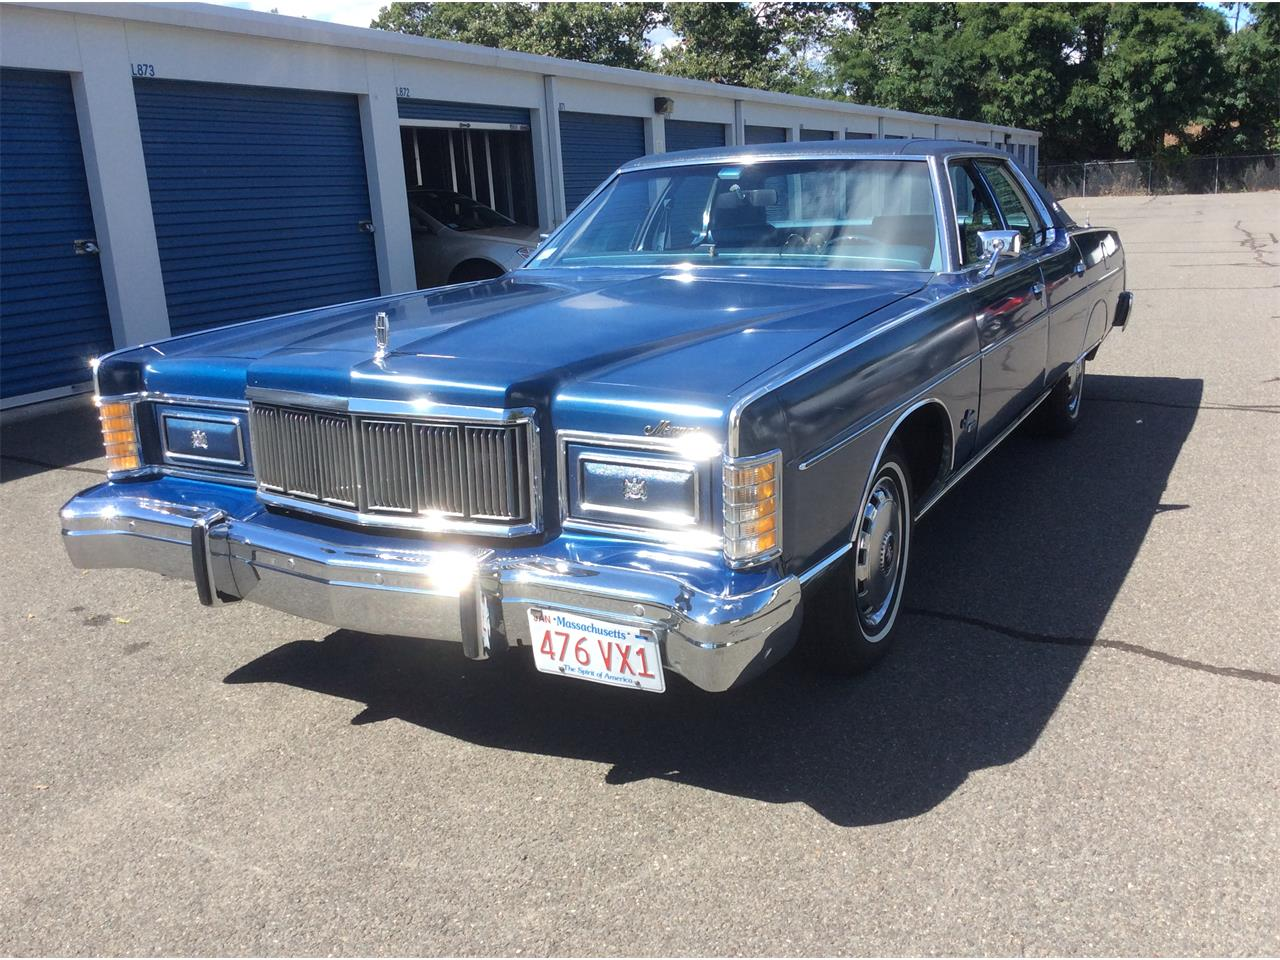 Grand Marquis For Sale >> 1975 Mercury Grand Marquis For Sale Classiccars Com Cc